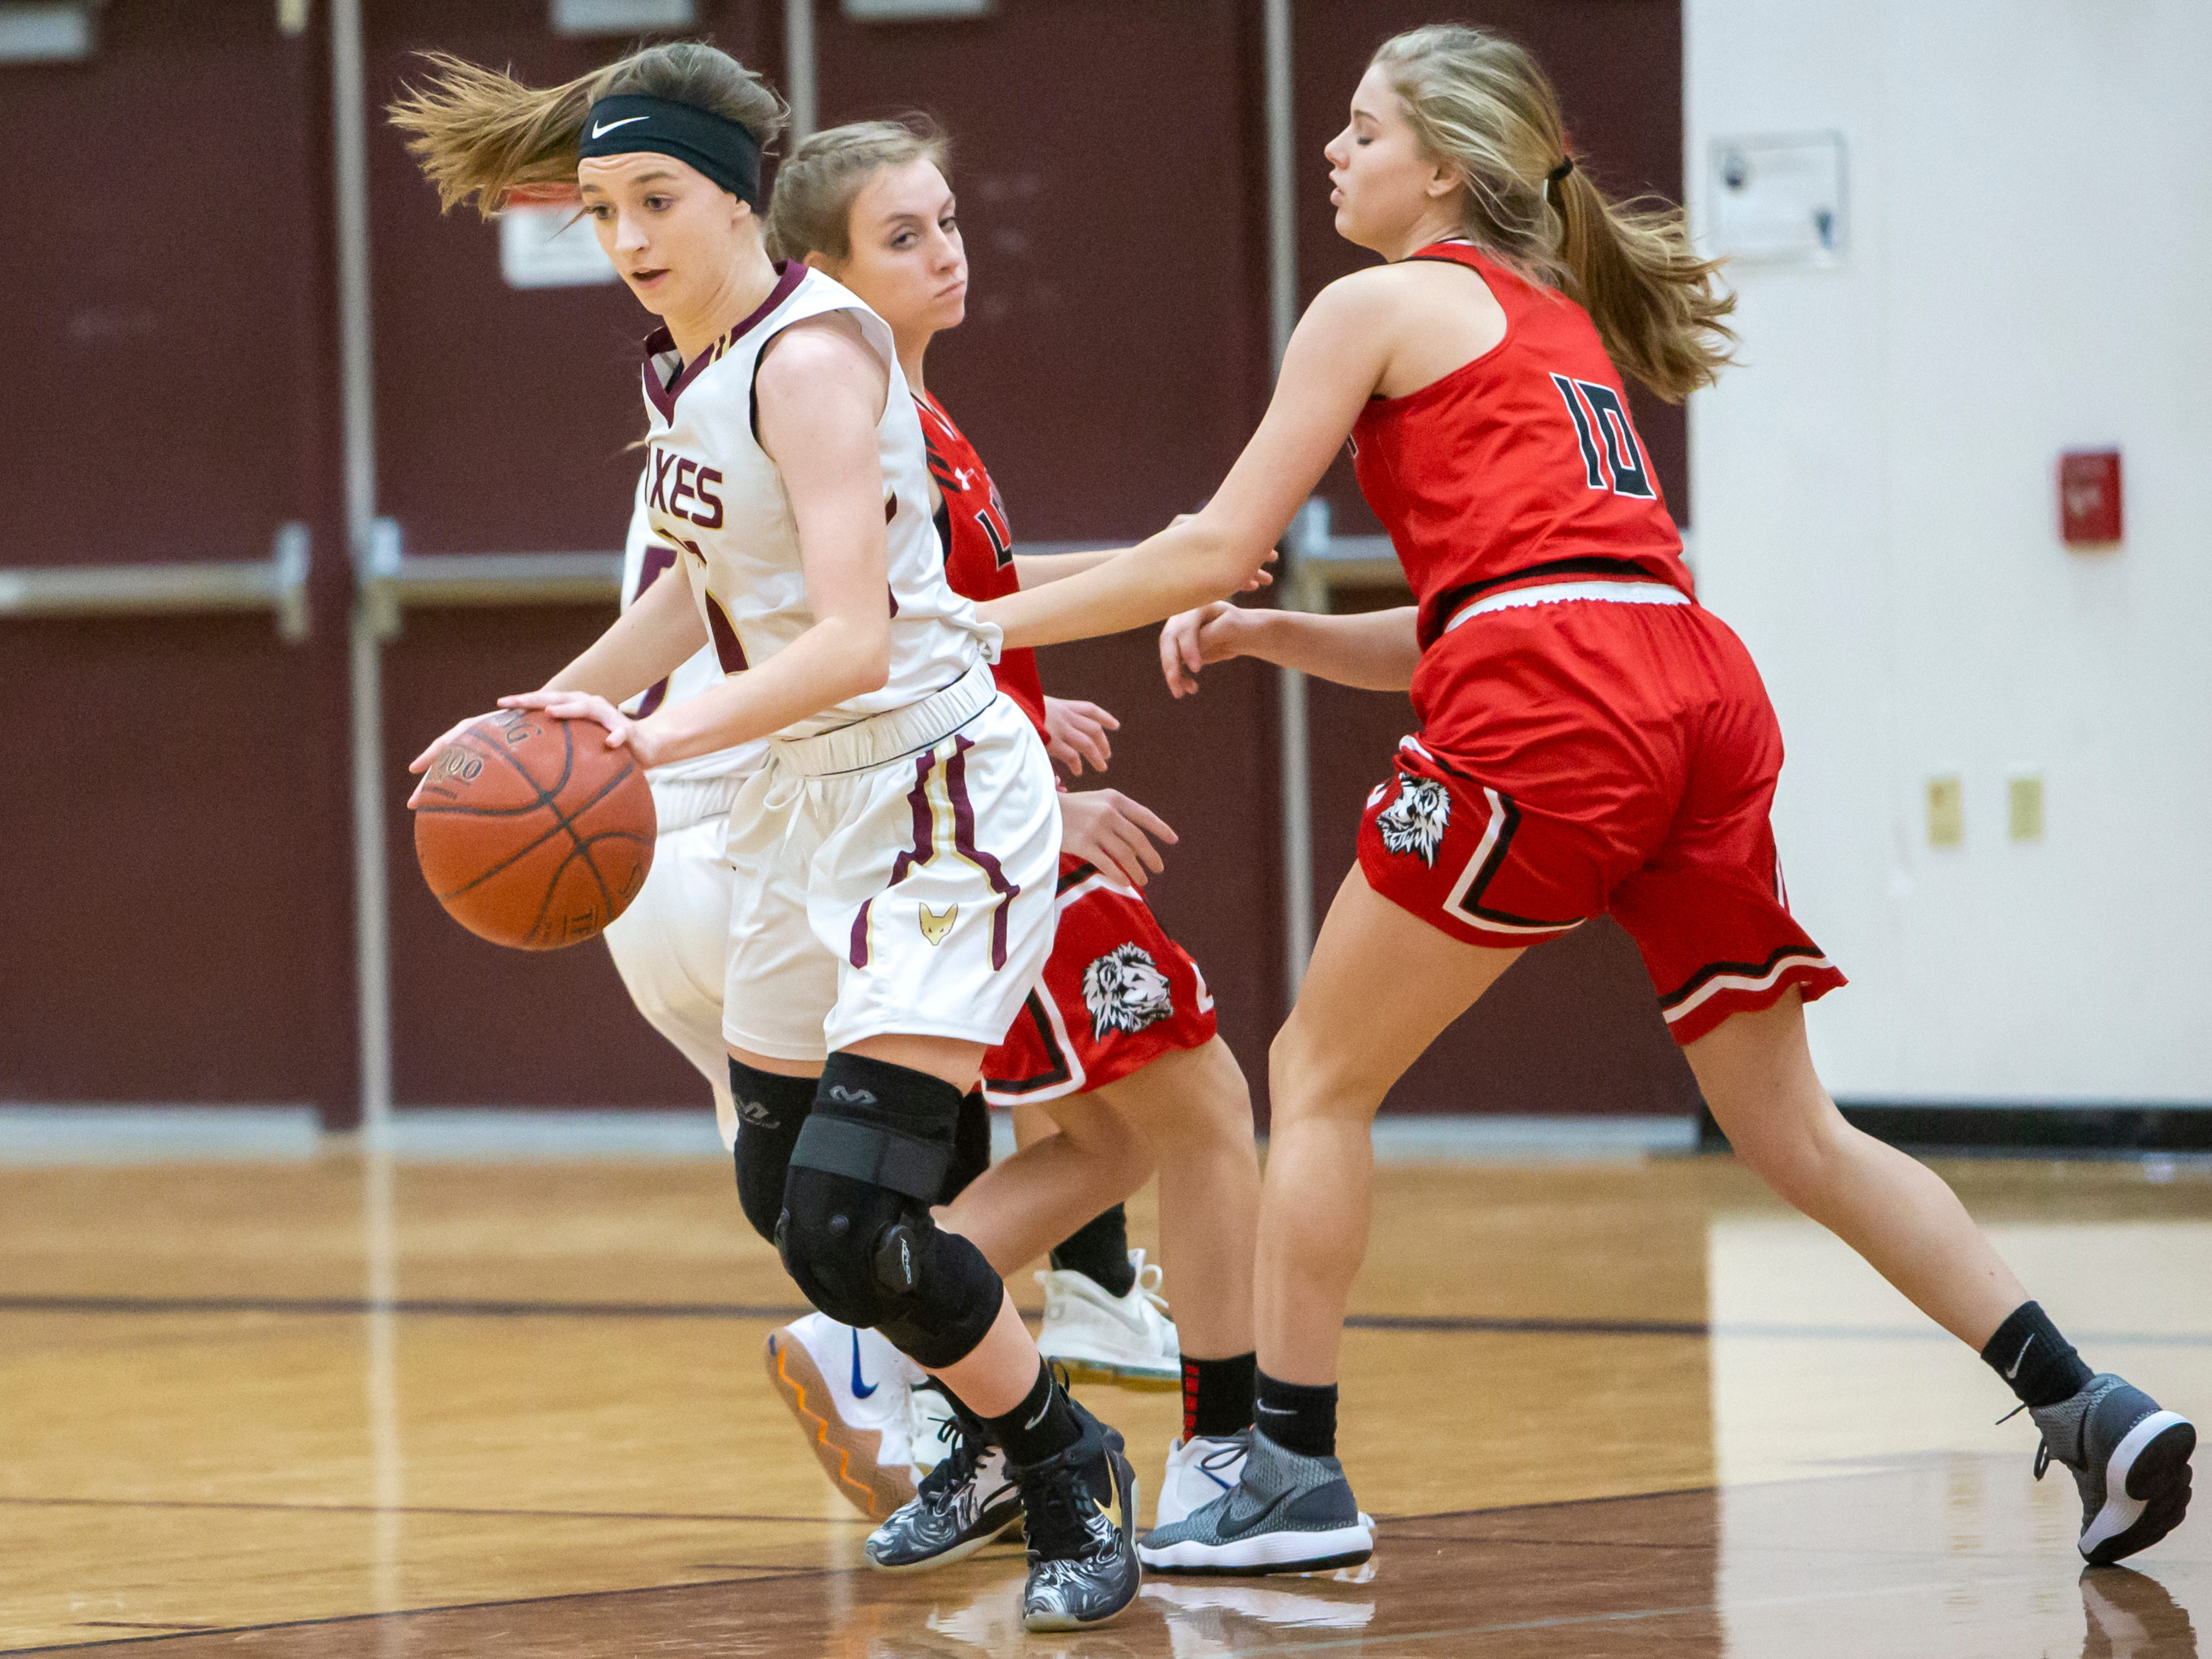 Omro's Danycka Milis takes the ball across the court at Omro High School playing against Lomira on Friday, December 14, 2018.